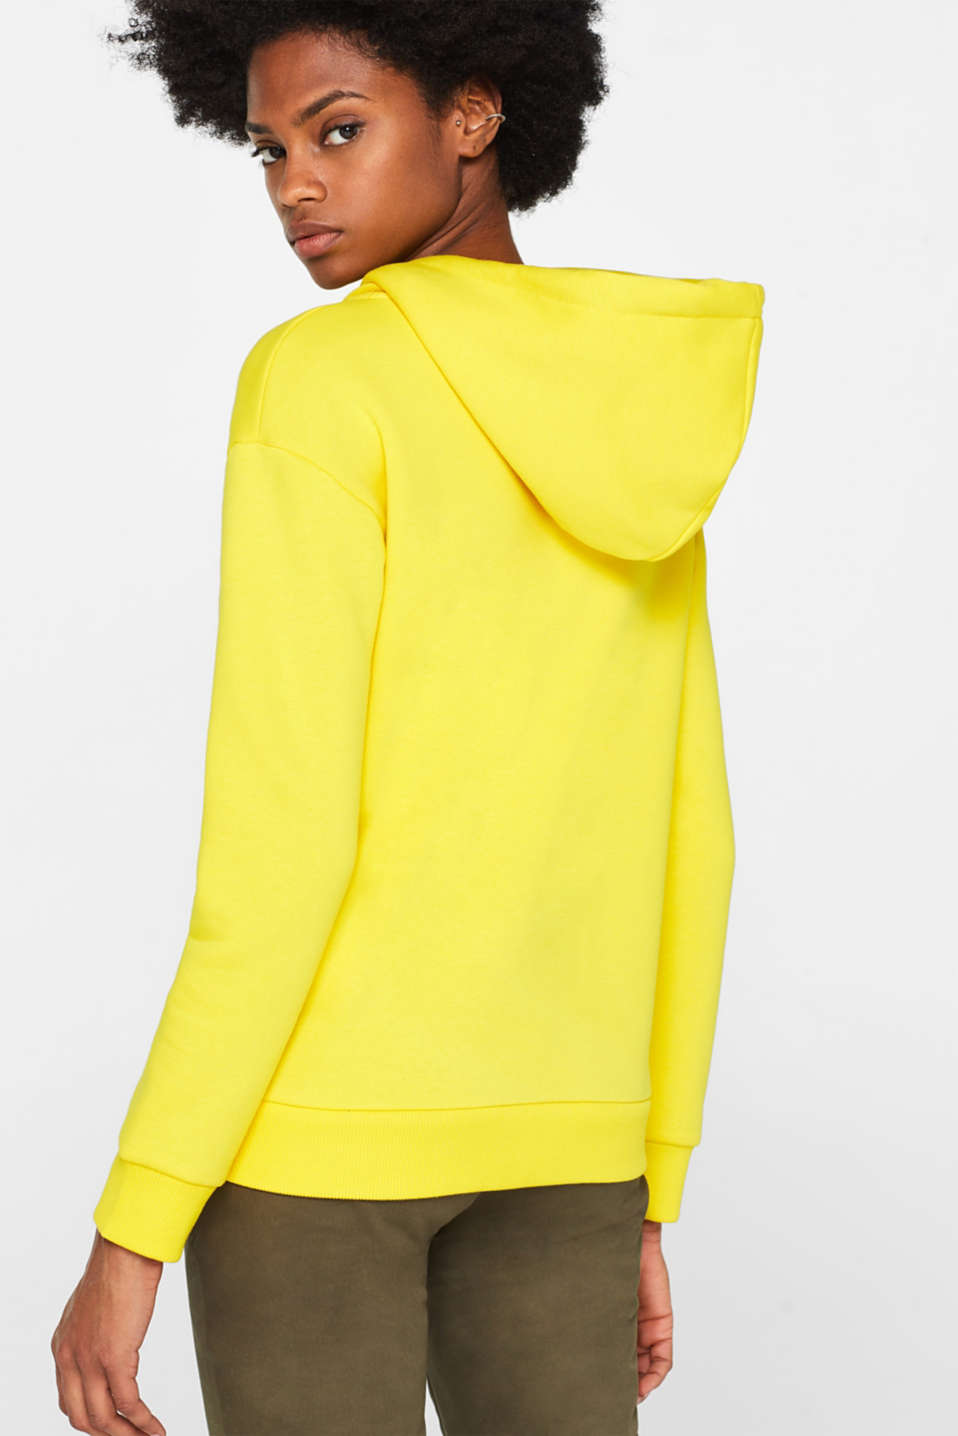 Hooded sweatshirt with a logo print, BRIGHT YELLOW, detail image number 3